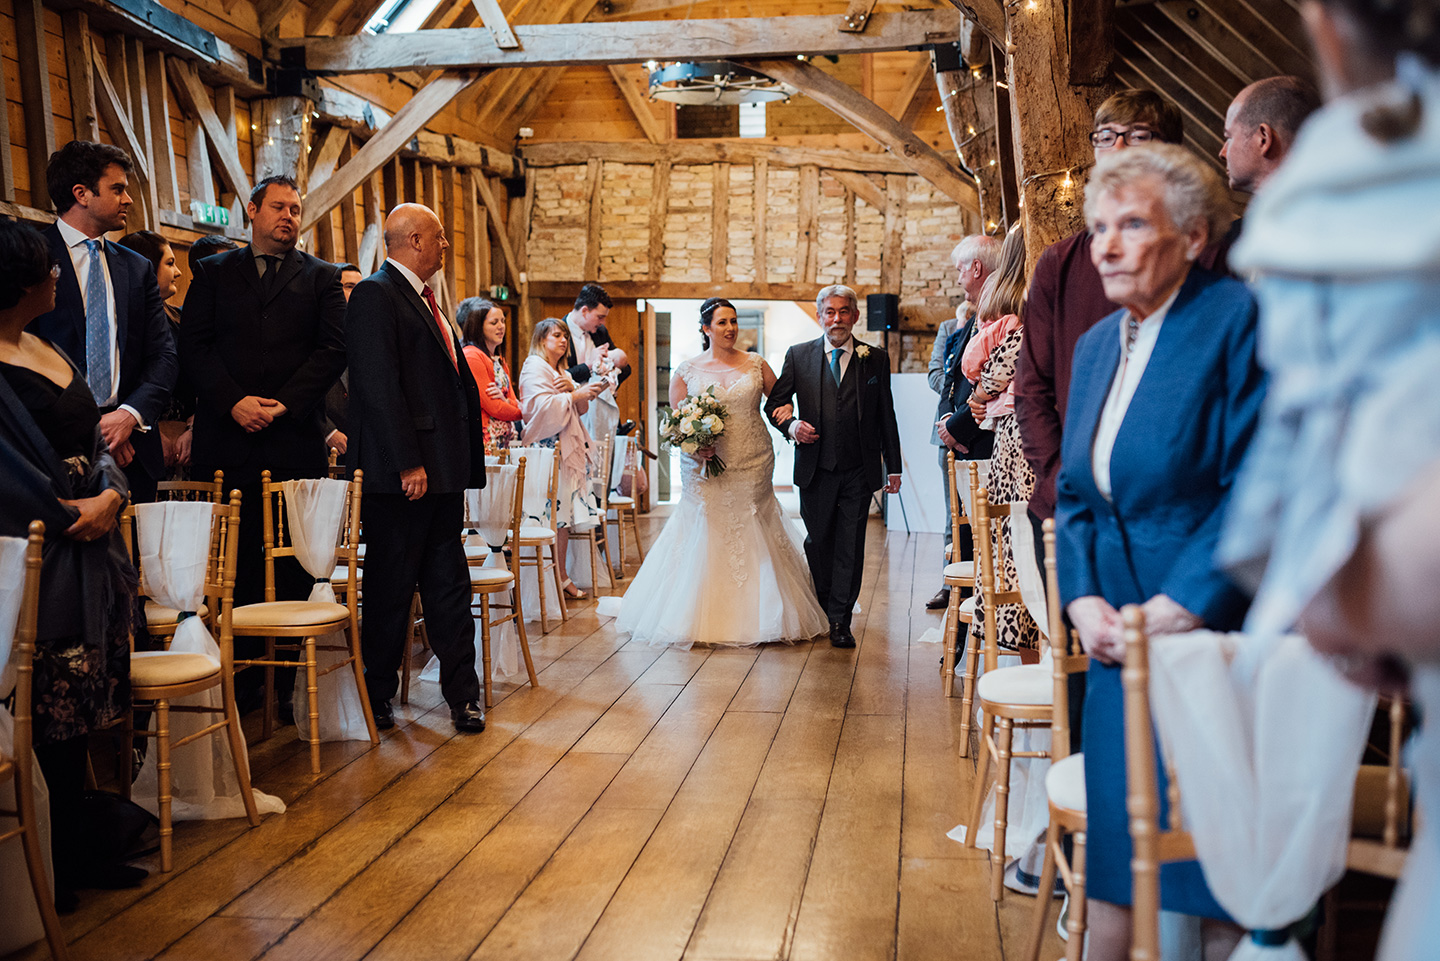 Bride makes her way down the aisle in the wedding ceremony barn